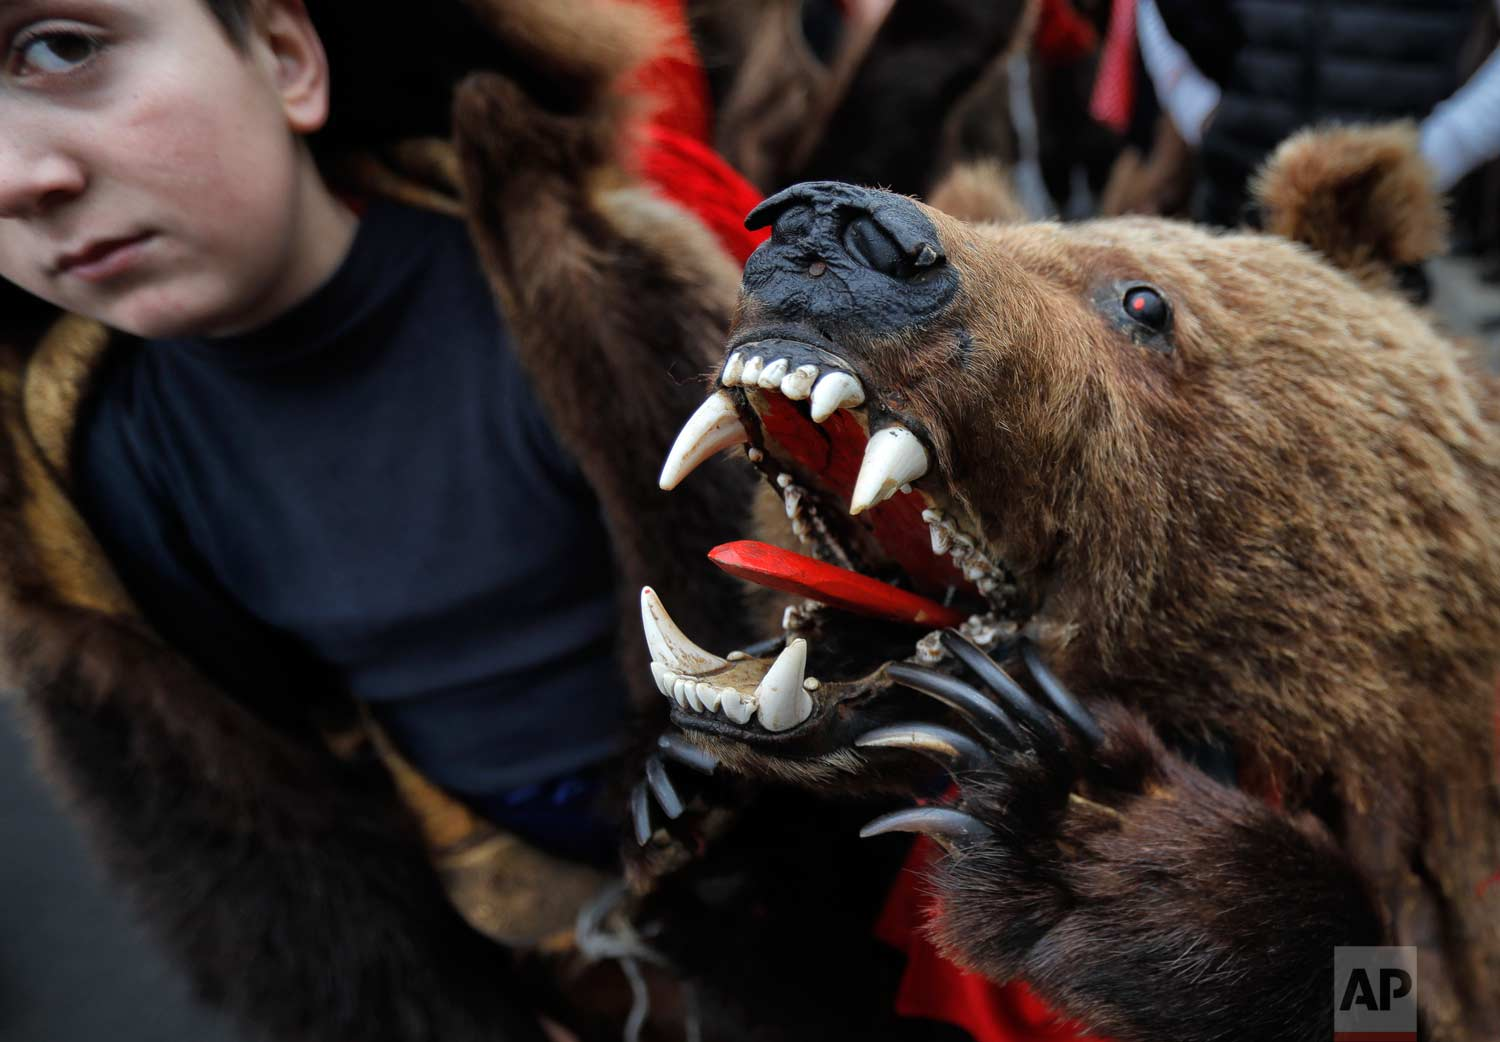 In this Saturday, Dec. 30, 2017, picture children wearing a bear fur costumes pause during an annual bear parade in Comanesti, Romania. (AP Photo/Vadim Ghirda)